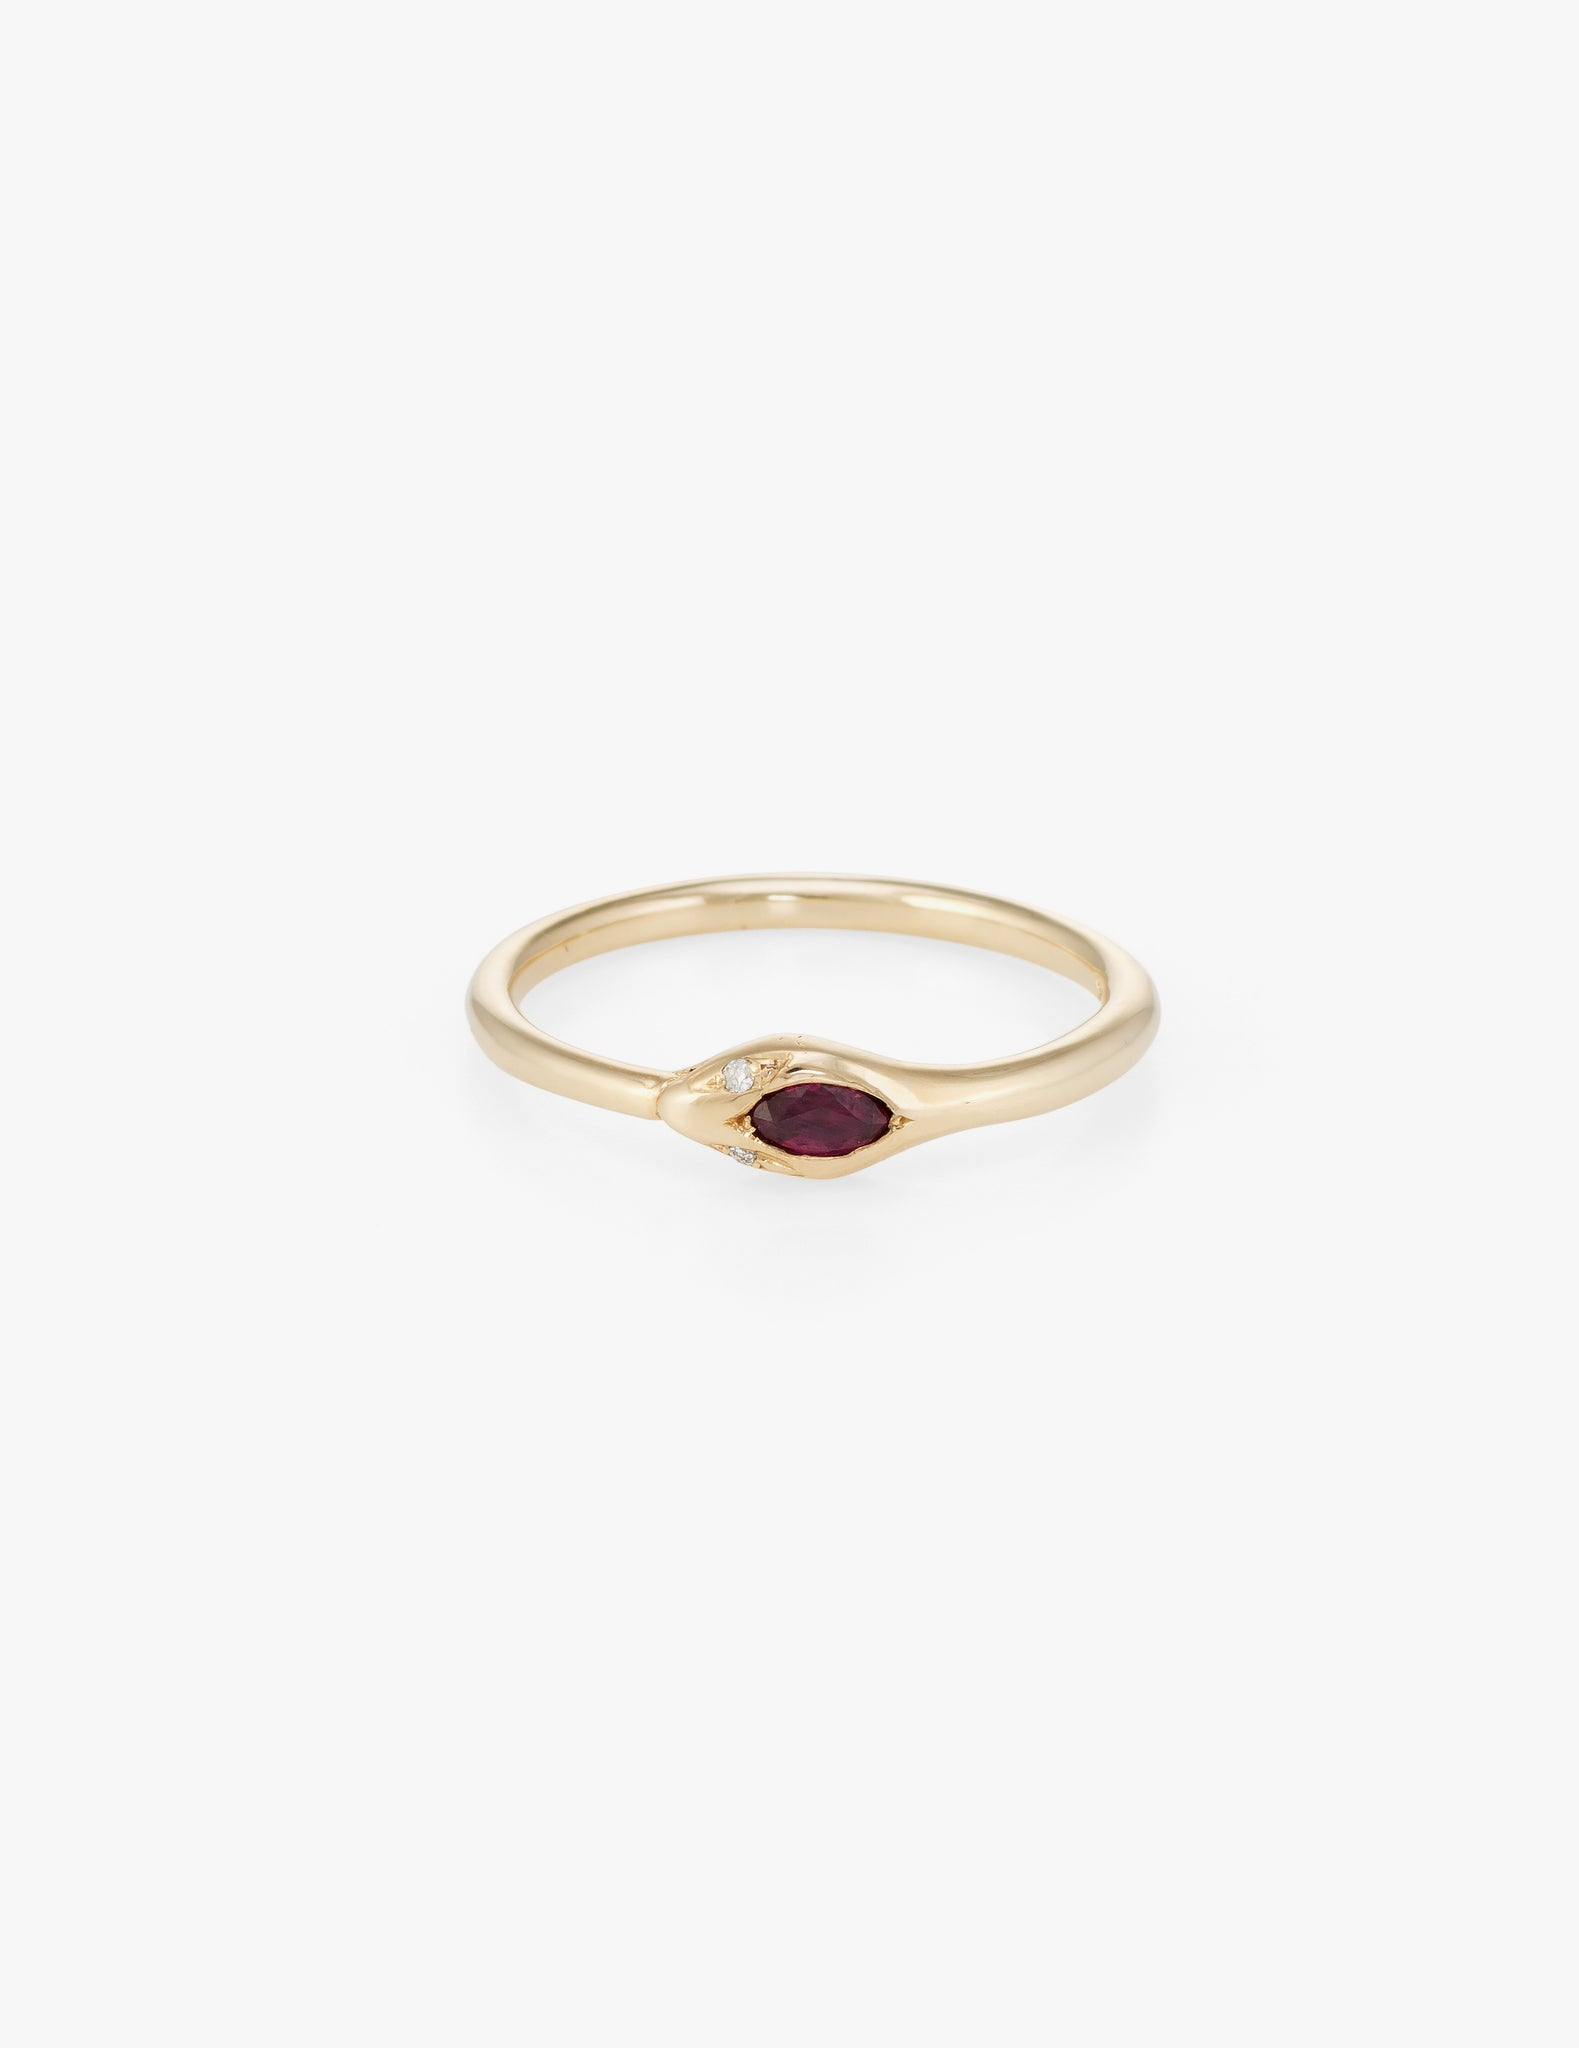 Ruby Ouroborus Ring